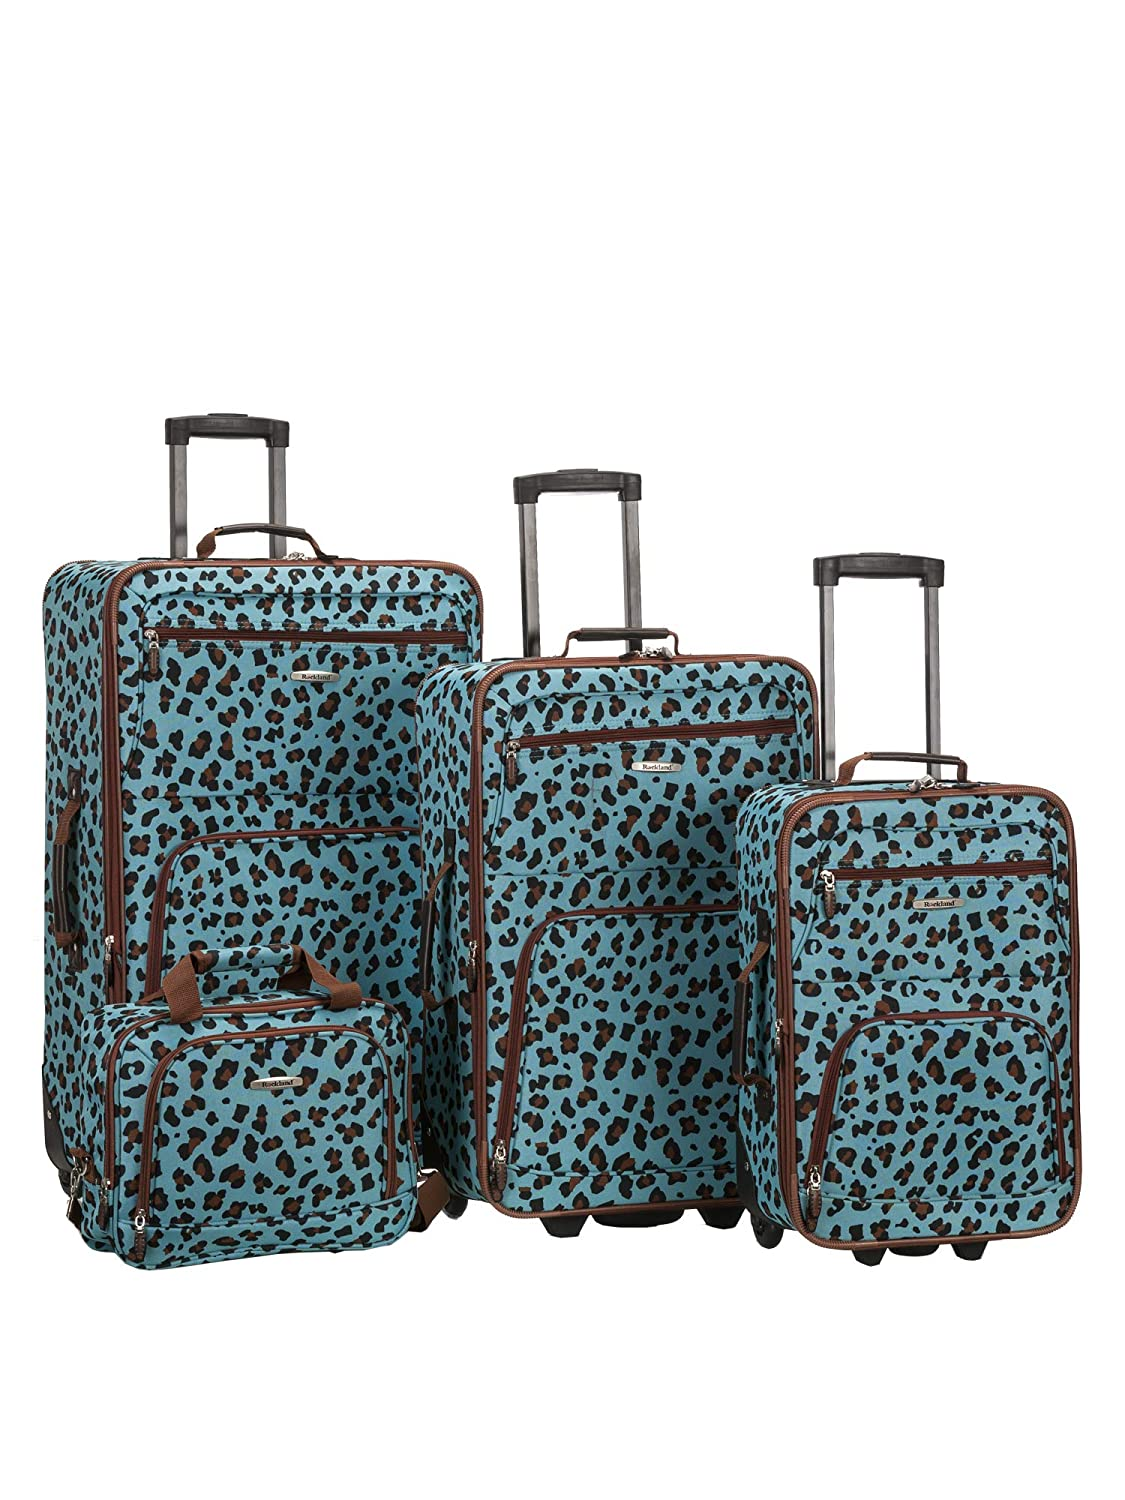 4b986079b Rockland 4 Piece Luggage Set, Blue Leopard, One Si.